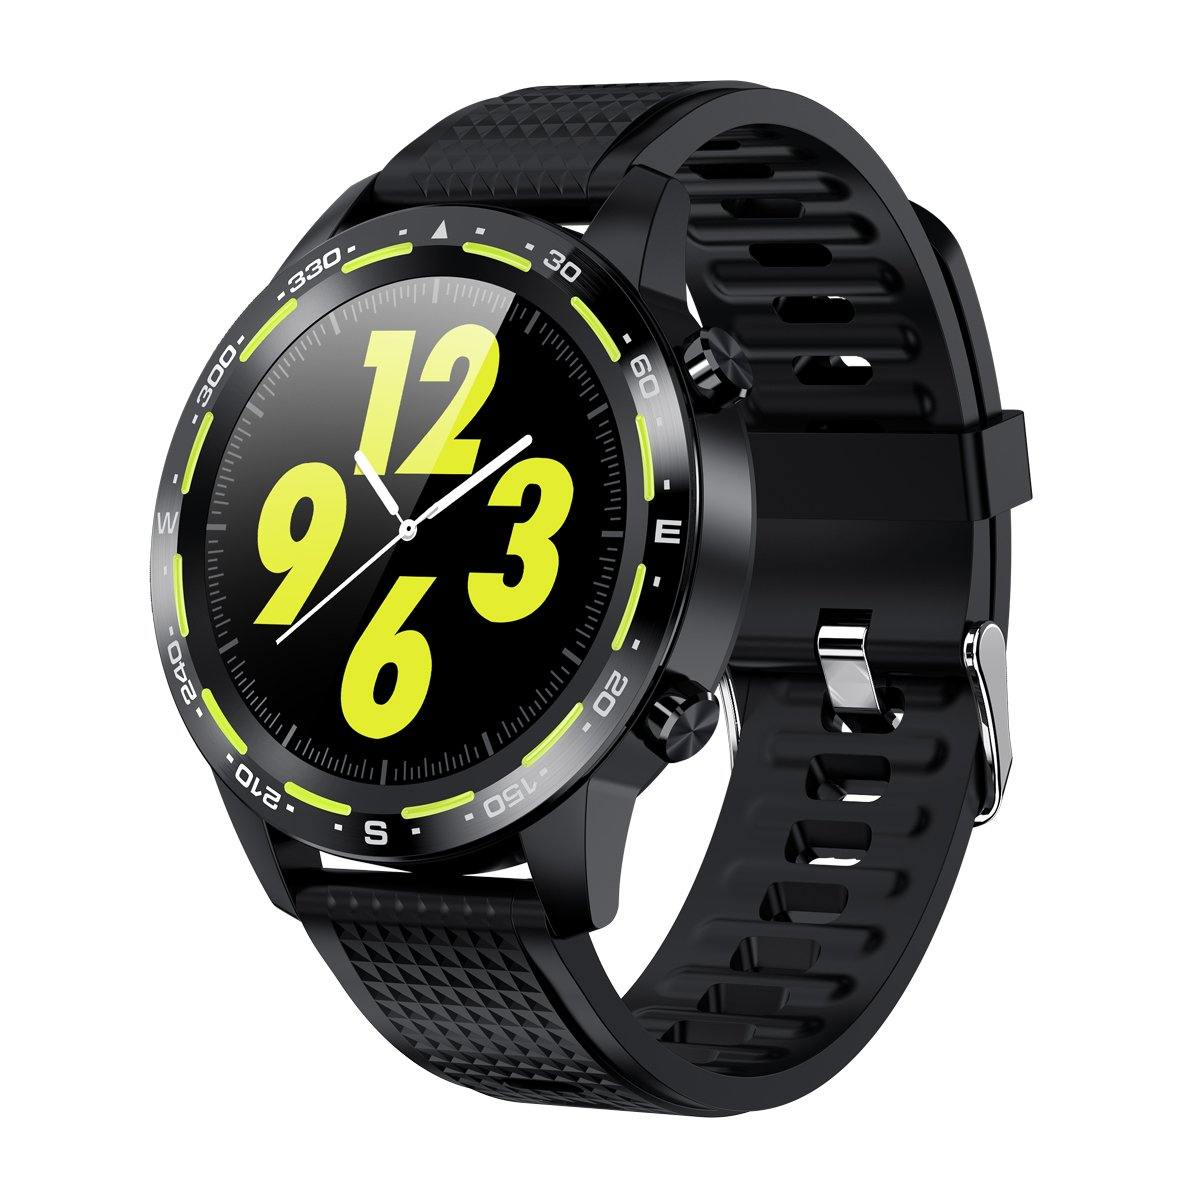 Microwear L12 Fitness/Smartwatch - Green